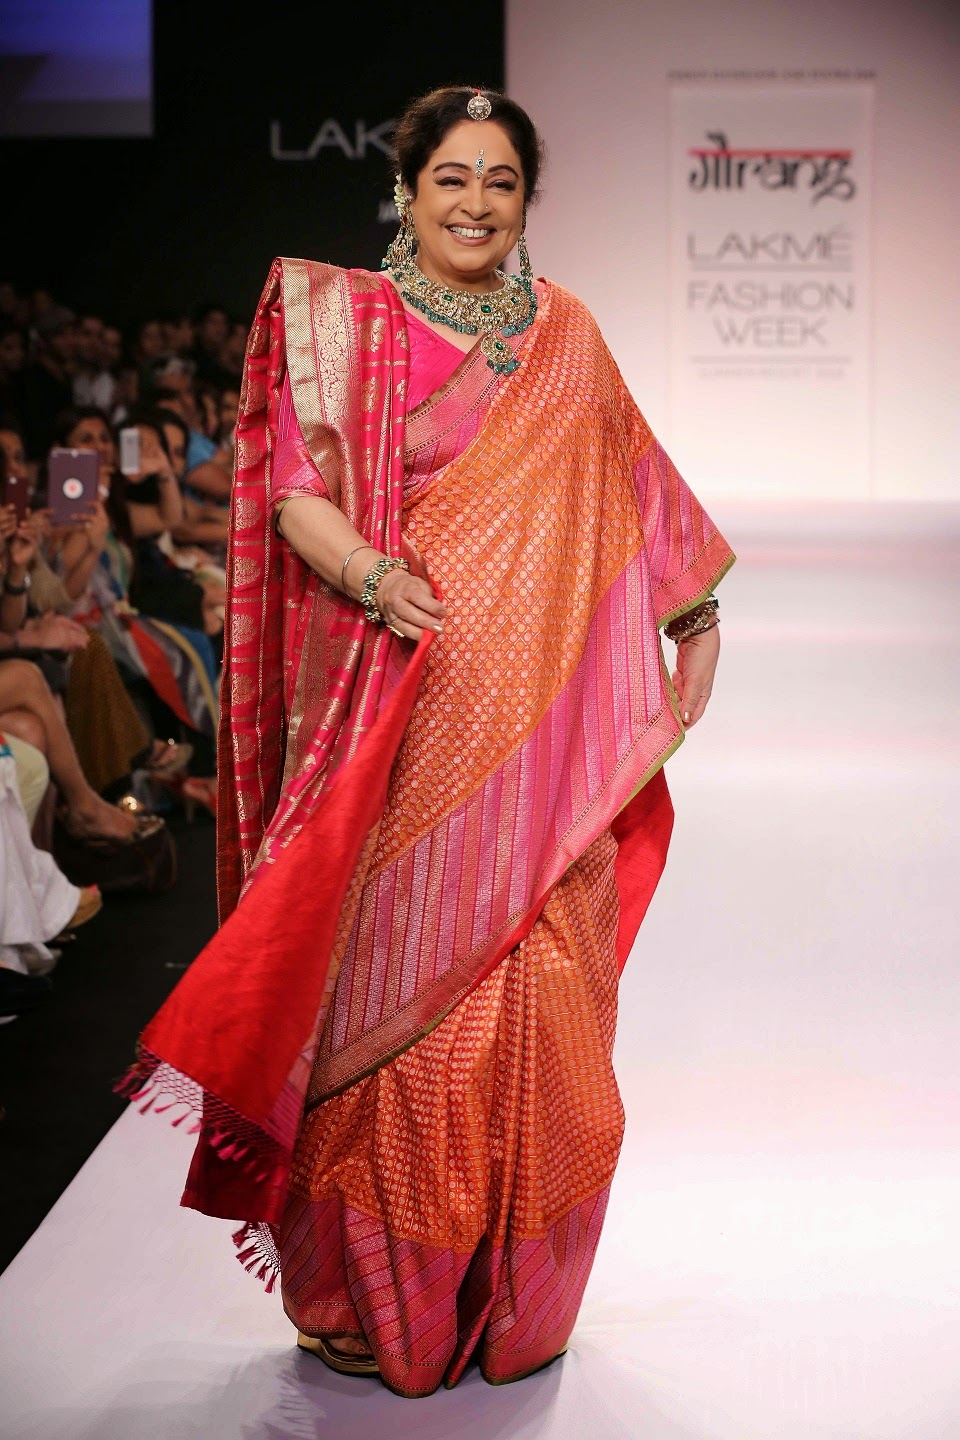 To end the show Gaurang had his favourite muse, the beautiful, elegant, dimpled Kirron Kher in a shocking pink brocade sari that glided down the ramp to thunderous applause.